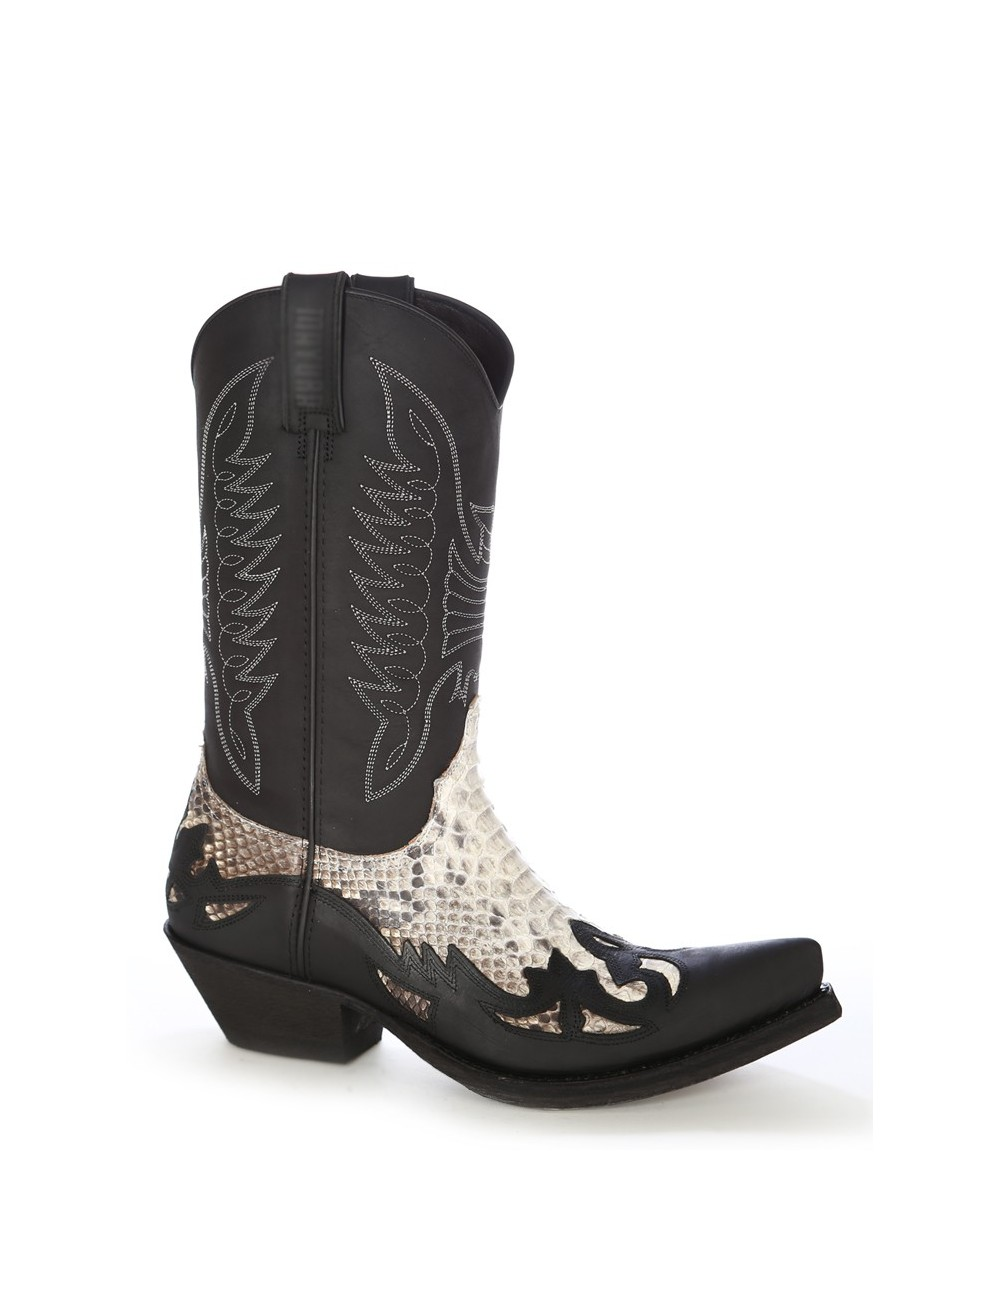 Bottes santiag country - Santiags mexicaines cuir et serpent naturel